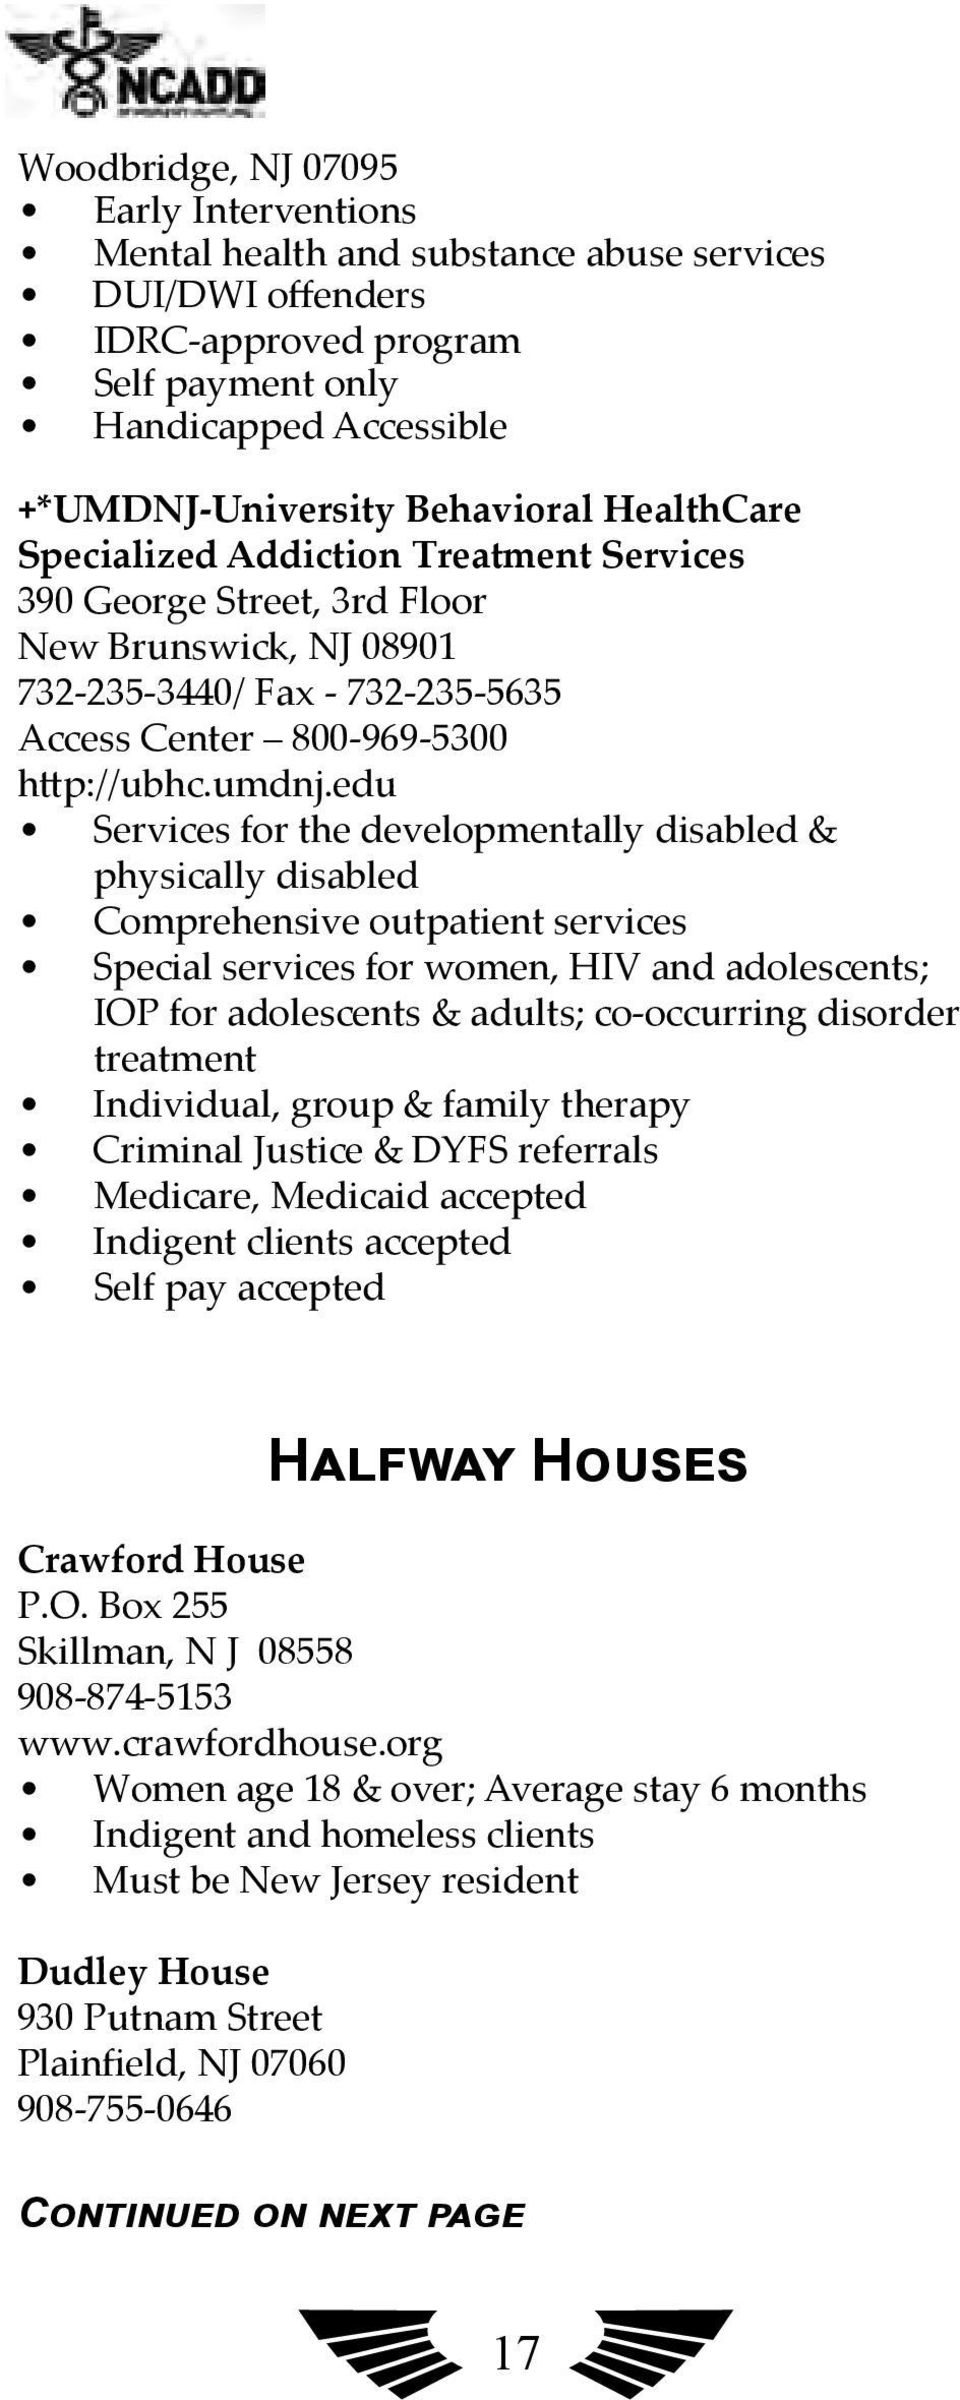 edu Services for the developmentally disabled & physically disabled Comprehensive outpatient services Special services for women, HIV and adolescents; IOP for adolescents & adults; co-occurring